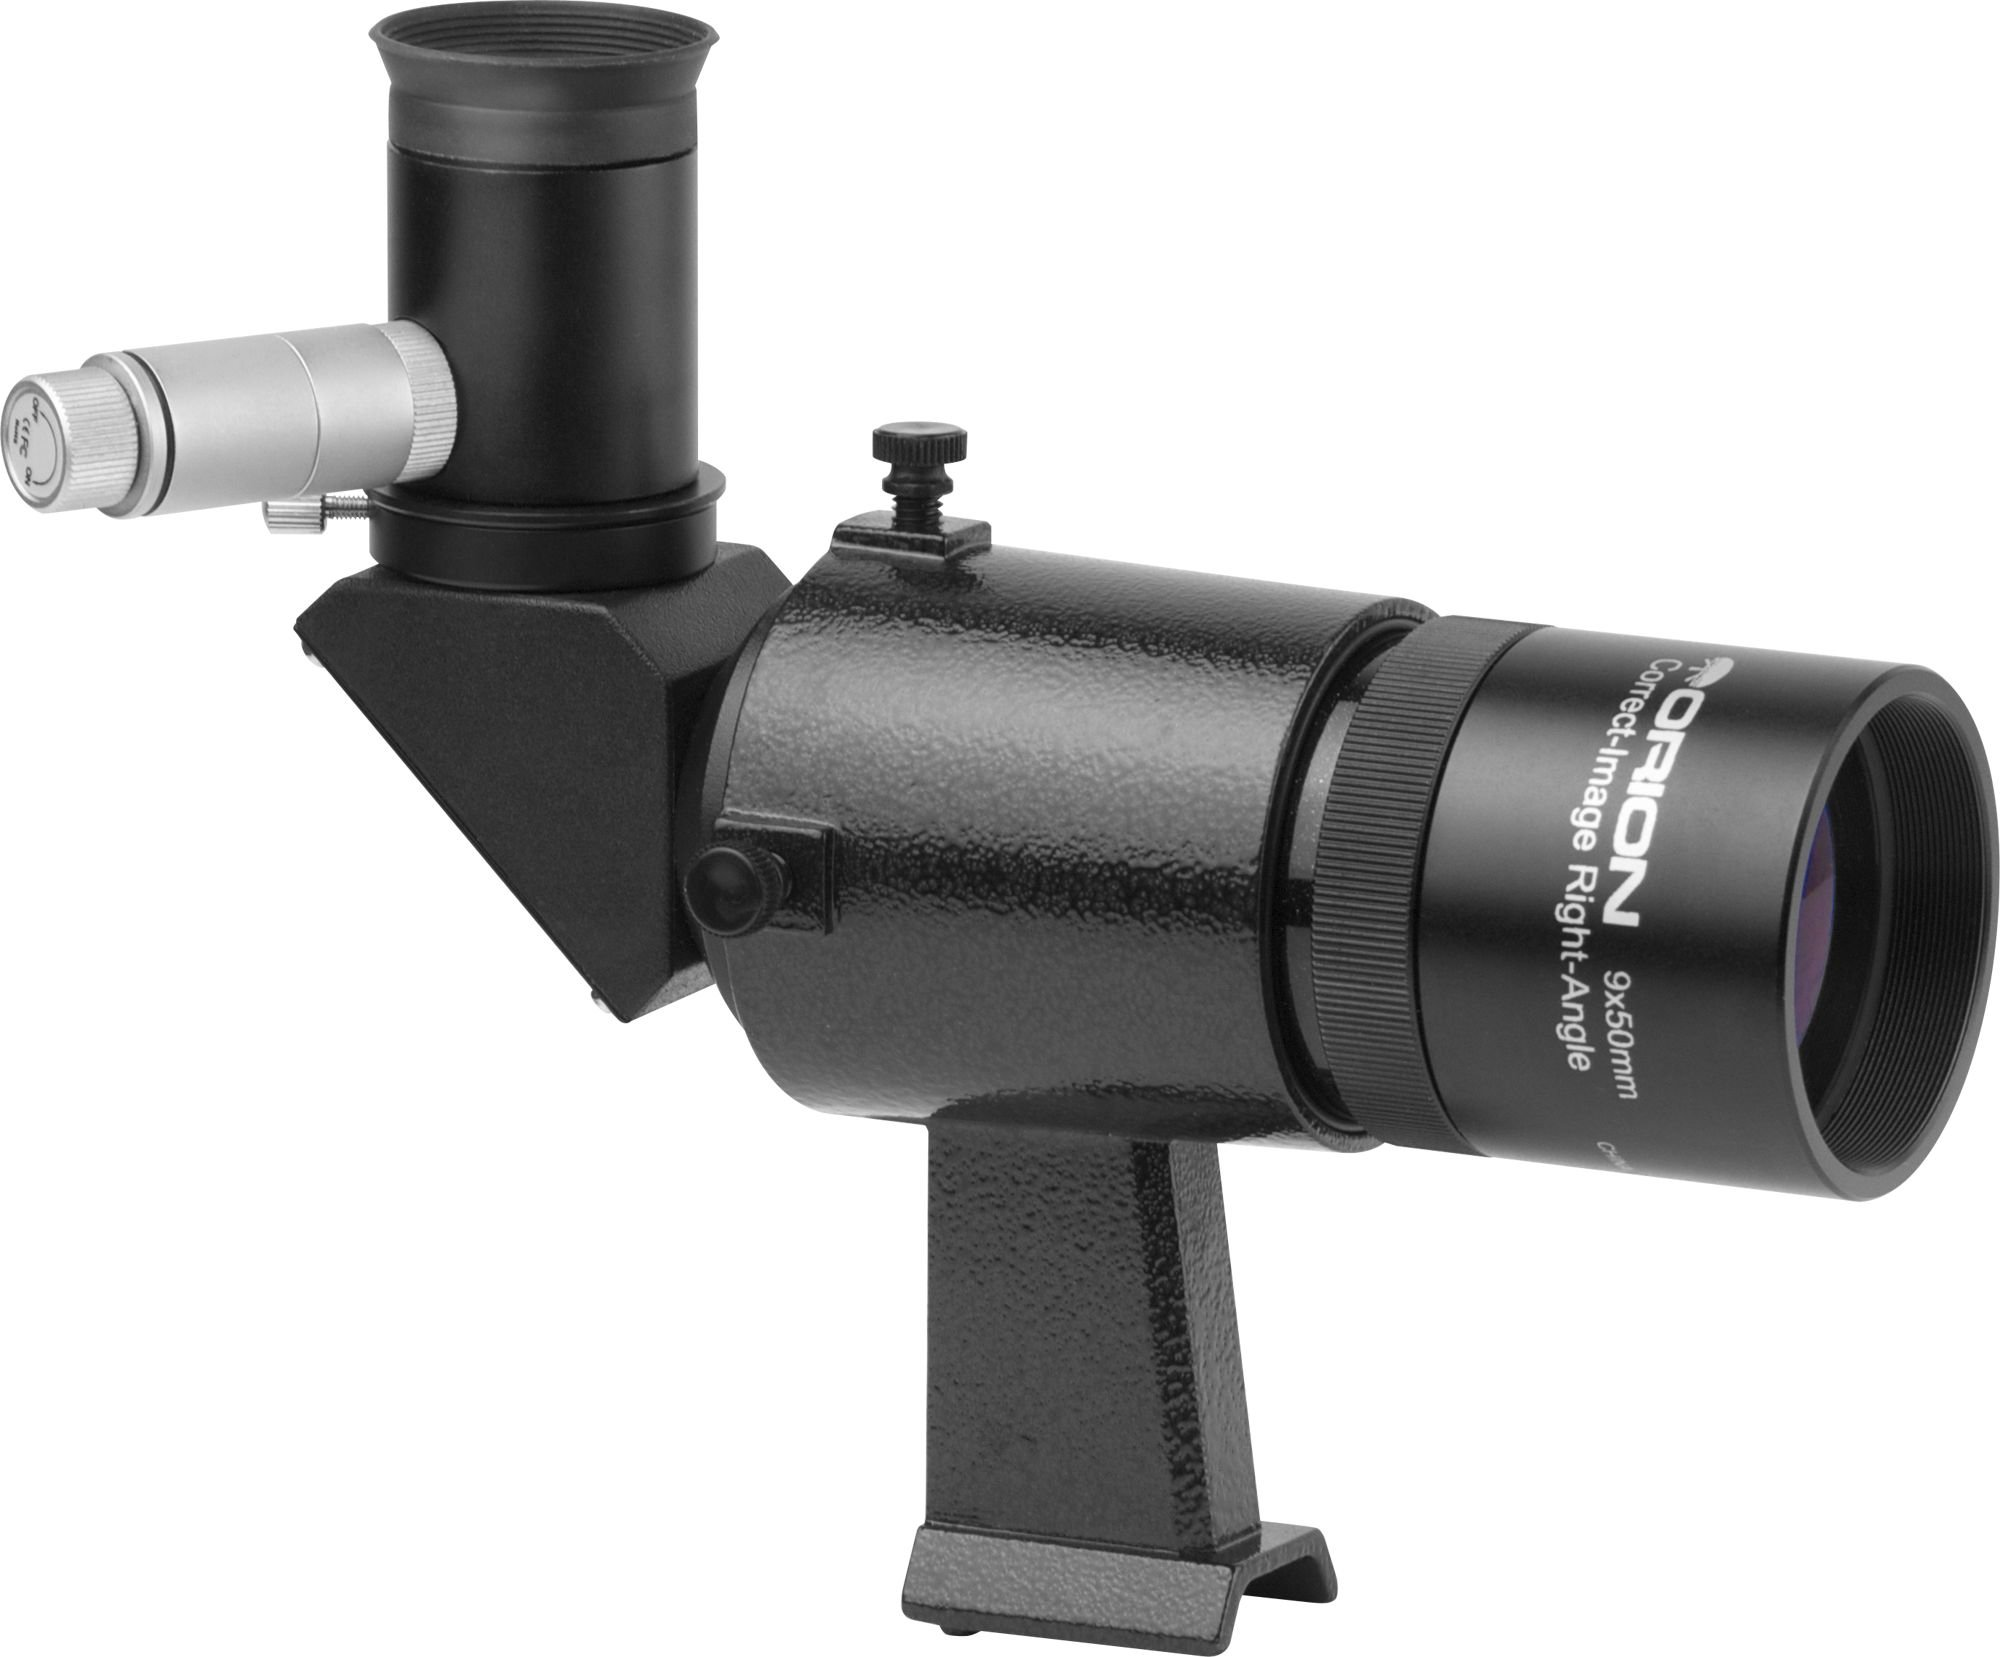 Orion 7020 9x50 Illuminated Right-Angle CI Finder Scope by Orion